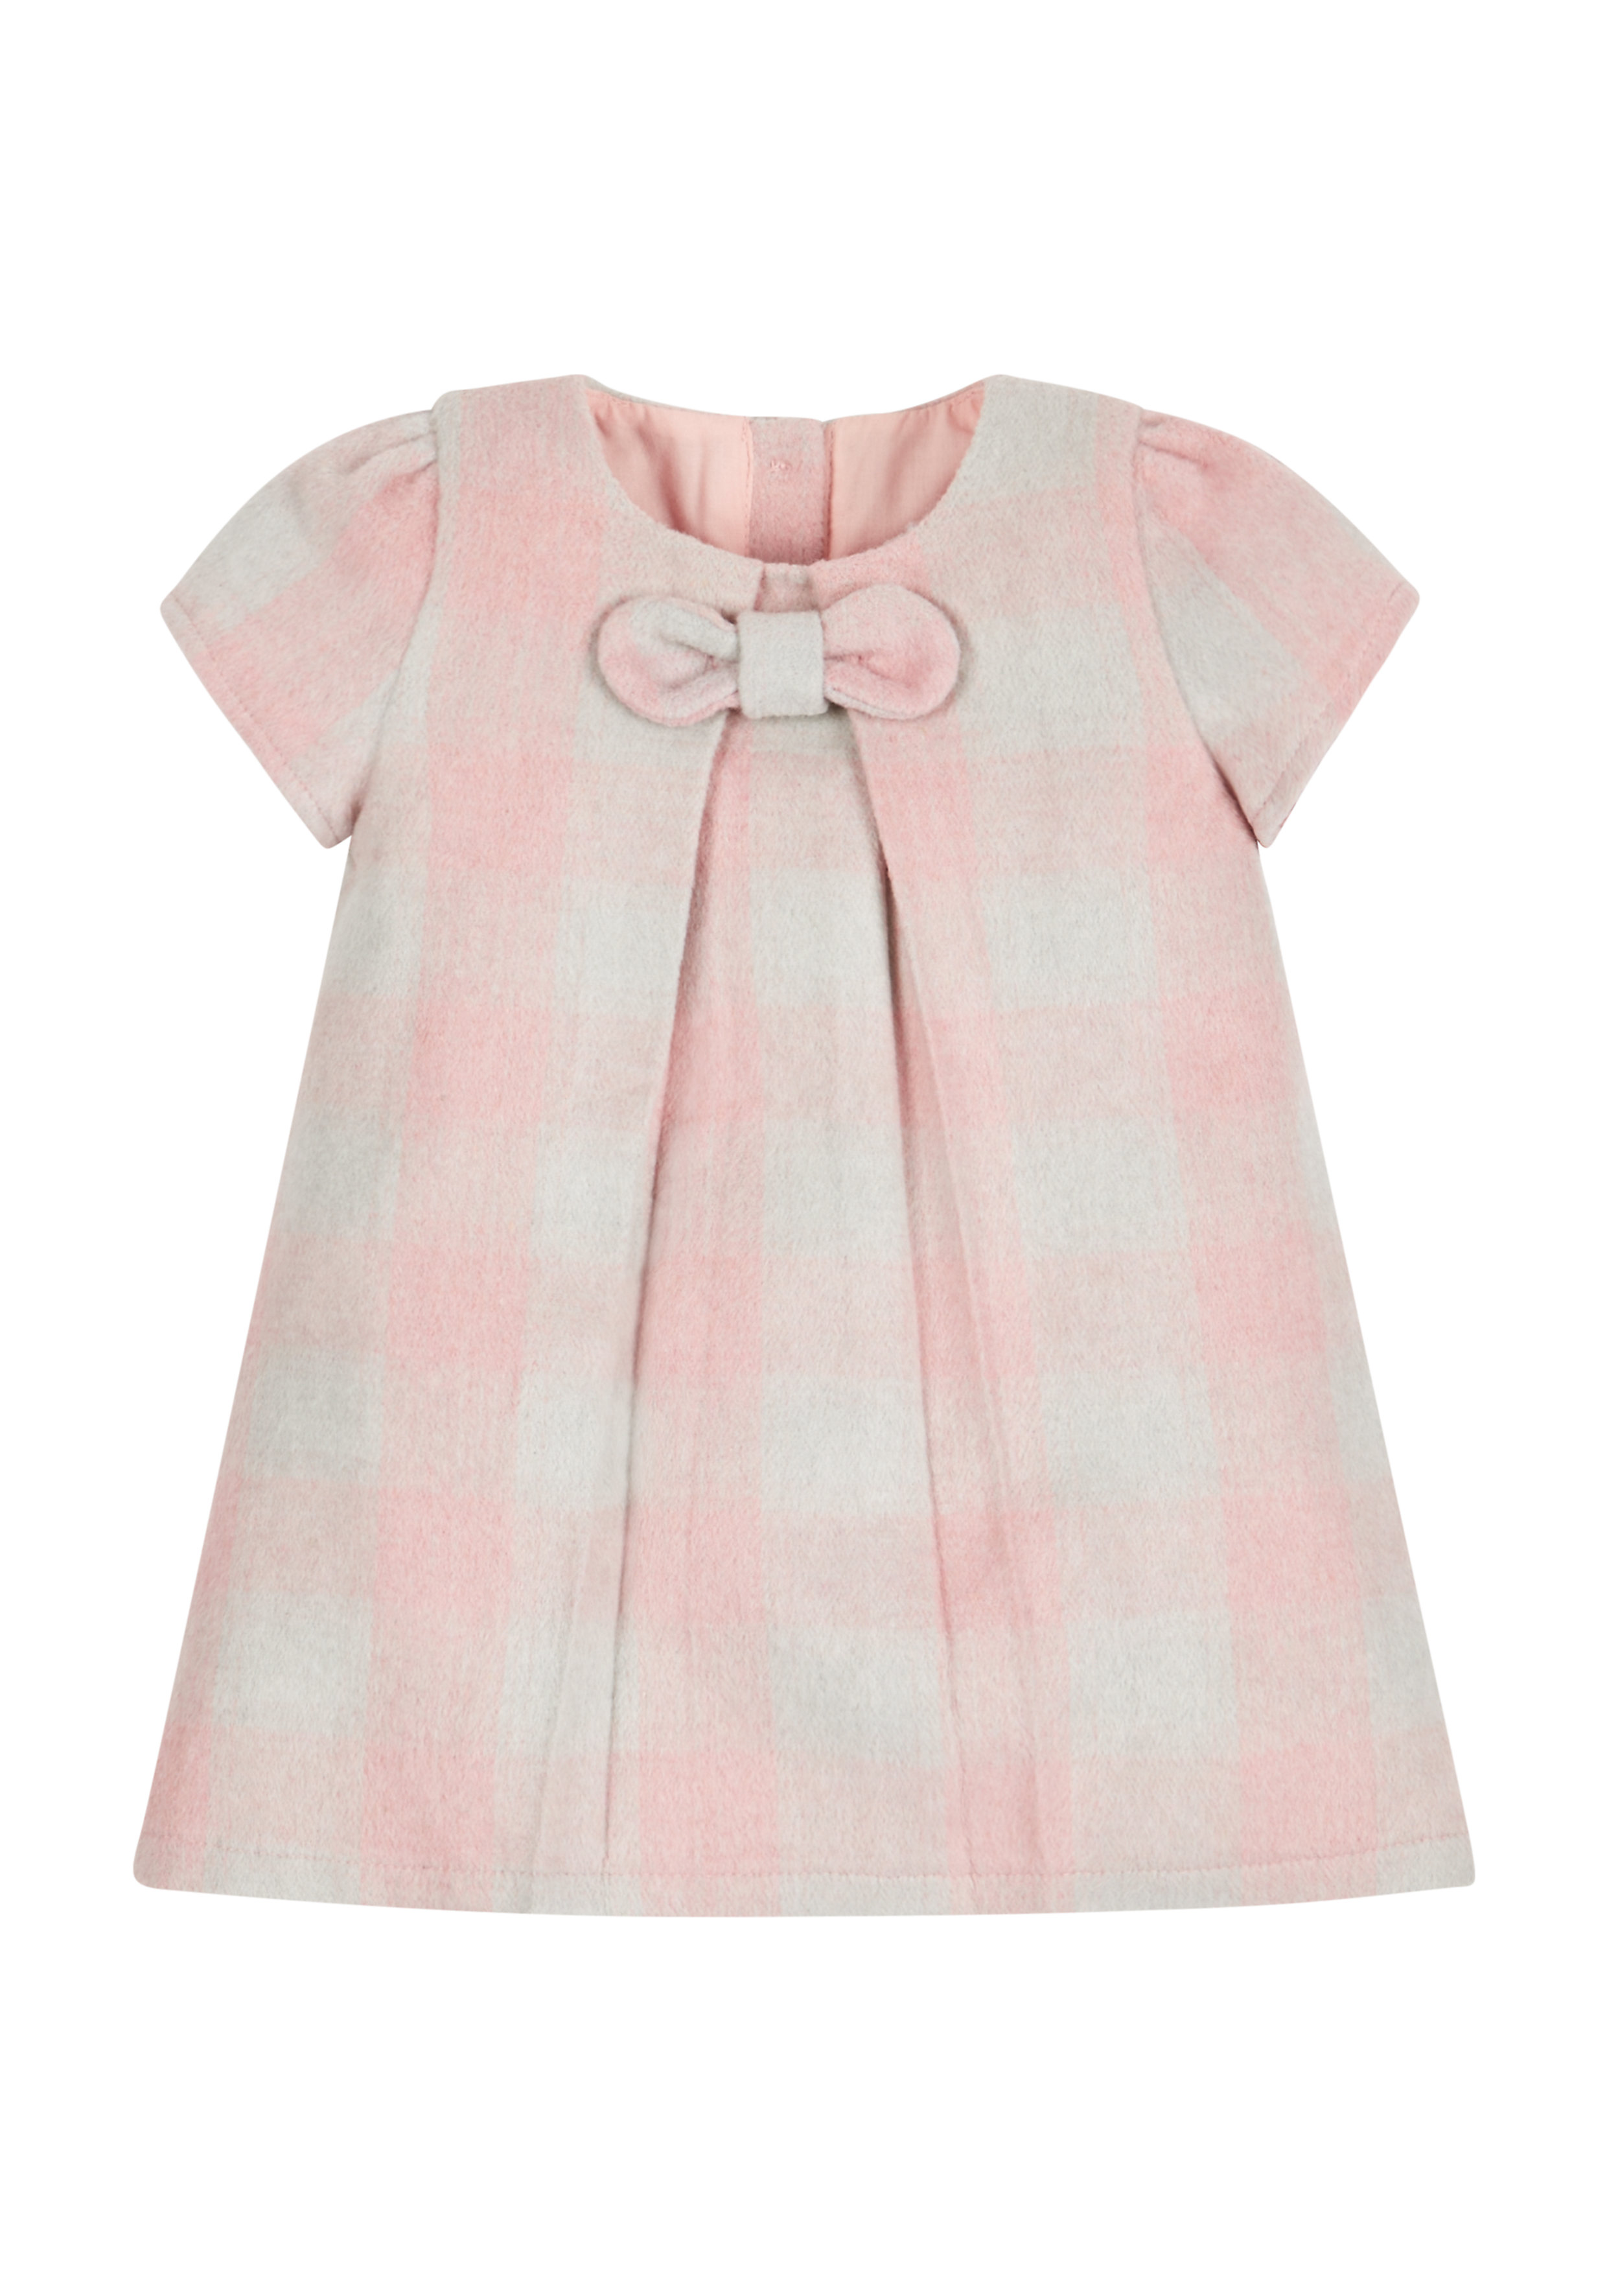 Mothercare | Girls Half Sleeves Check Dress Bow Detail - Pink